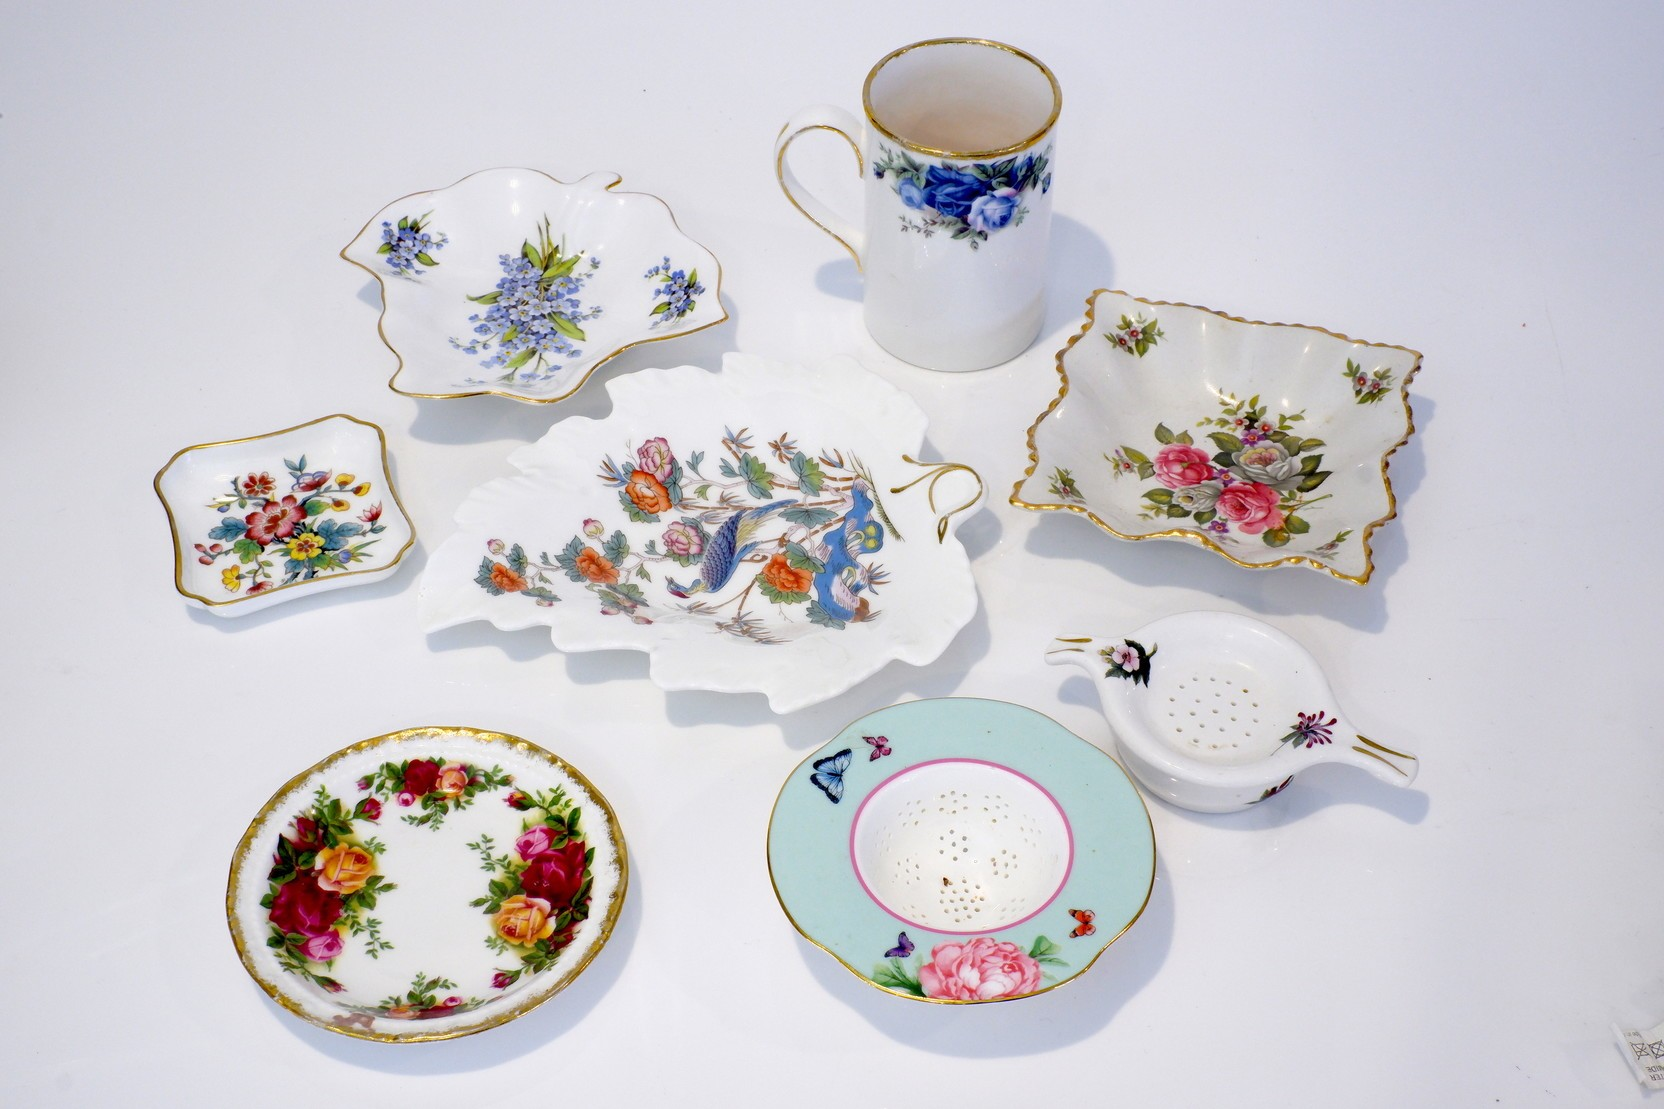 'Group of Various English Porcelain, Including Wedgwood, Royal Doulton, Royal Albert etc'